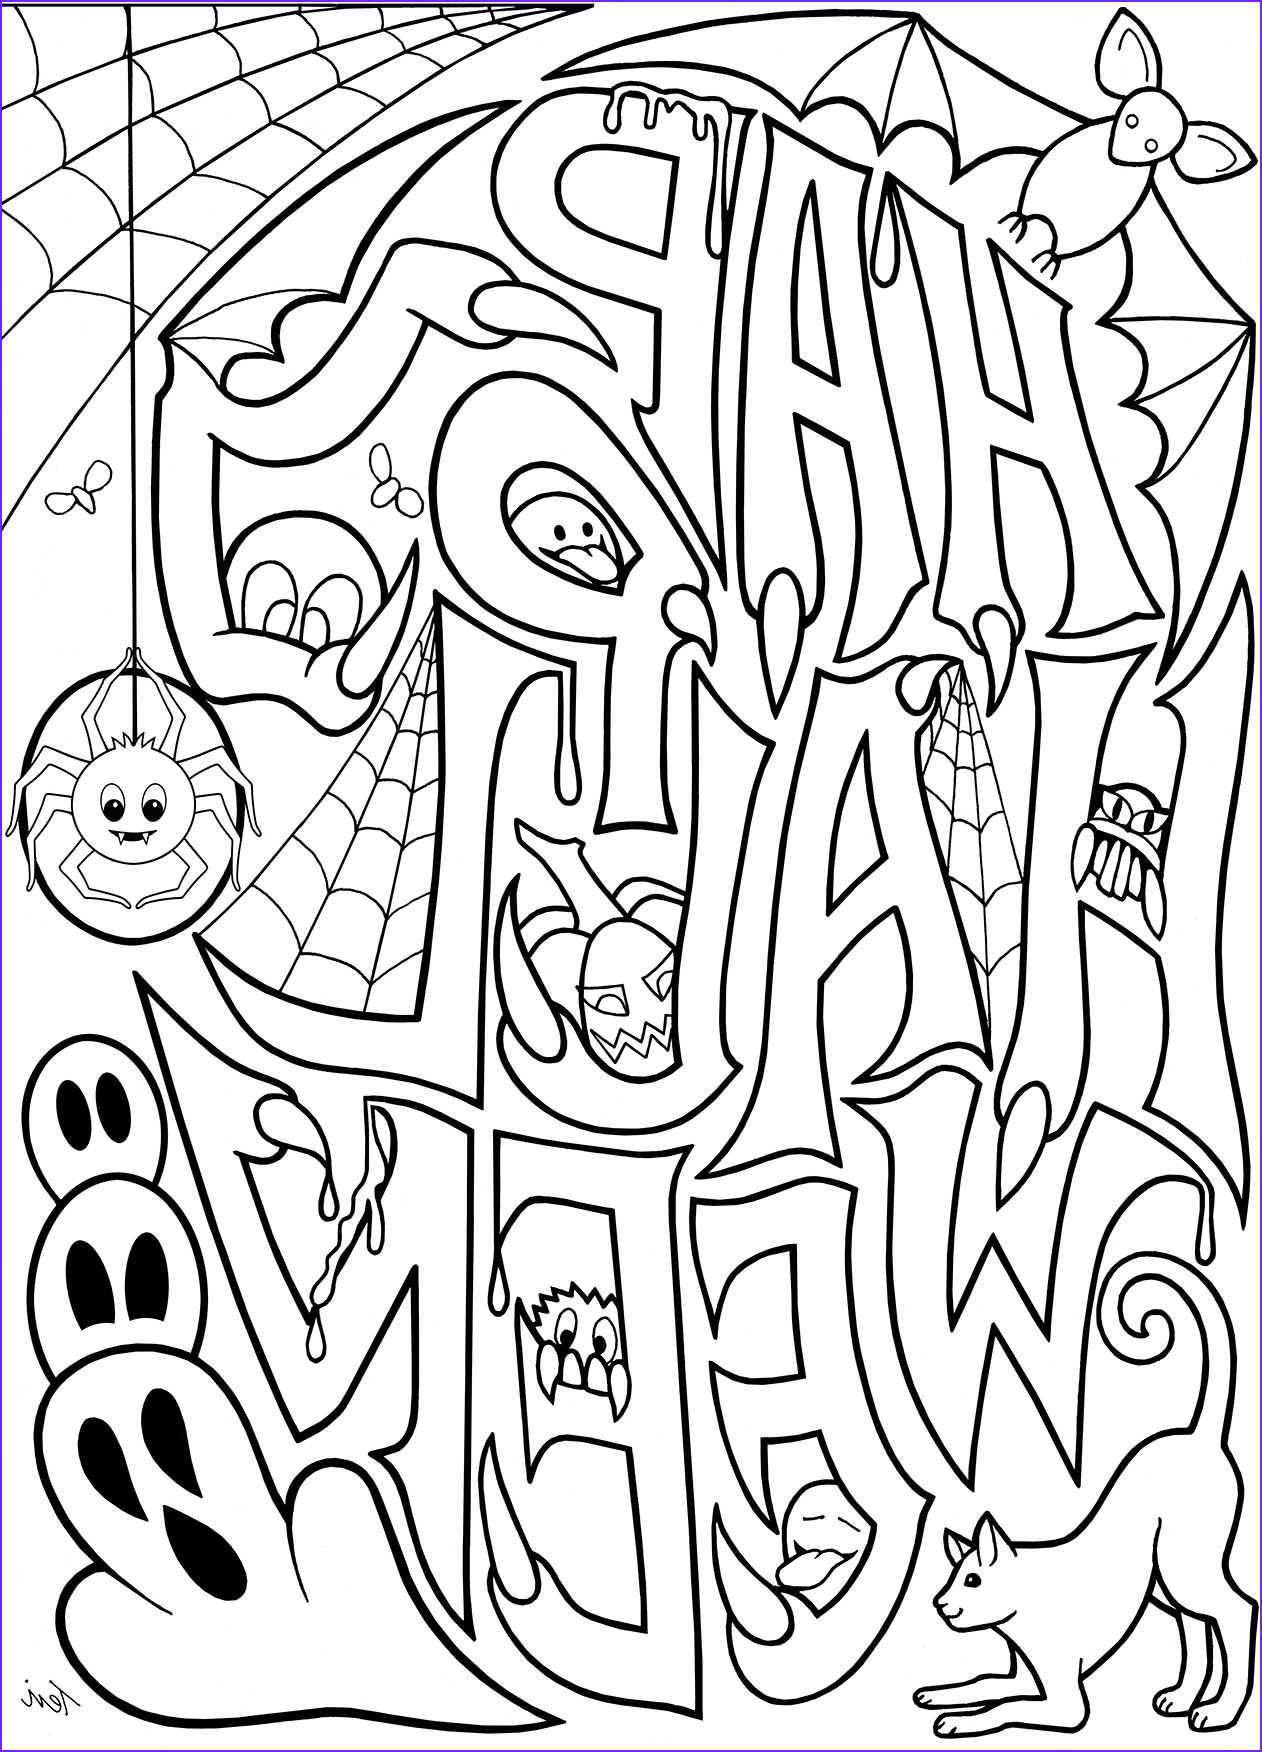 Fun Halloween Coloring Pages New Gallery Free Adult Coloring Book Pages Happy Halloween by Blue